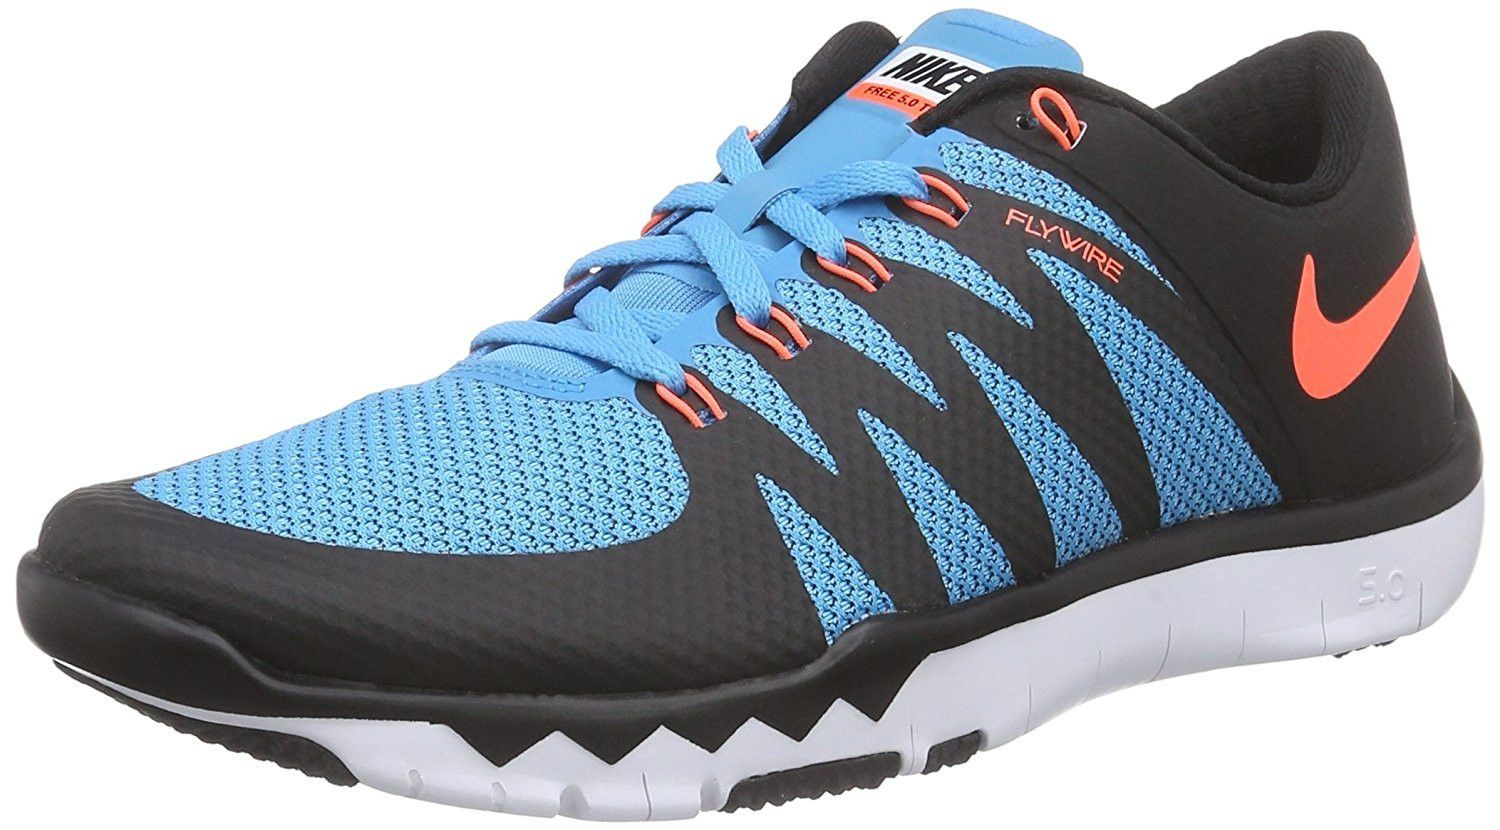 cheap for discount c74ac 5d5c8 Nike Men's Free Trainer 5.0 V6 Training Shoe - Flywire ...